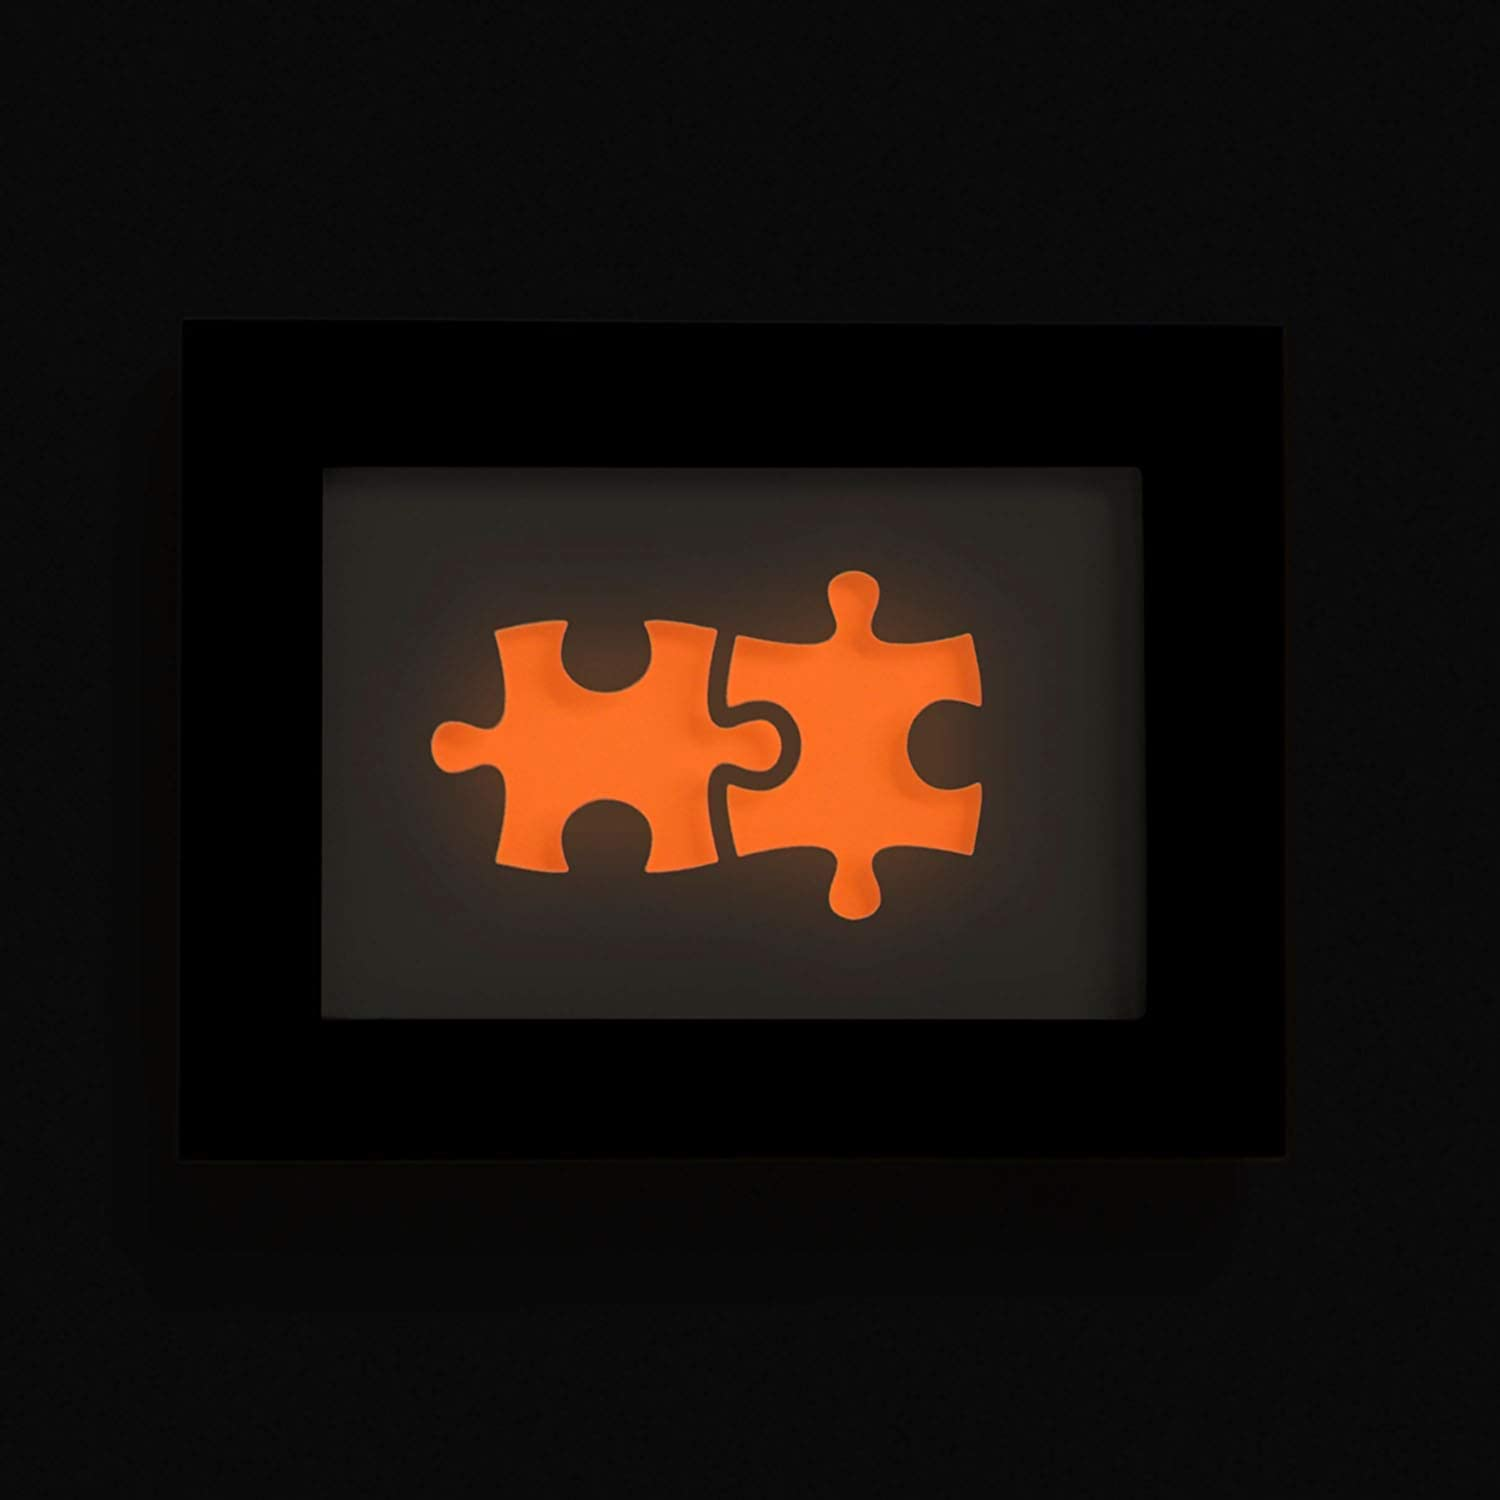 We fit together Puzzle Personalized Wedding Gift the Perfect Present for the Bride and Groom or Anniversary DIY the Name and Date Easily Glow in the Dark Paper Cut Art